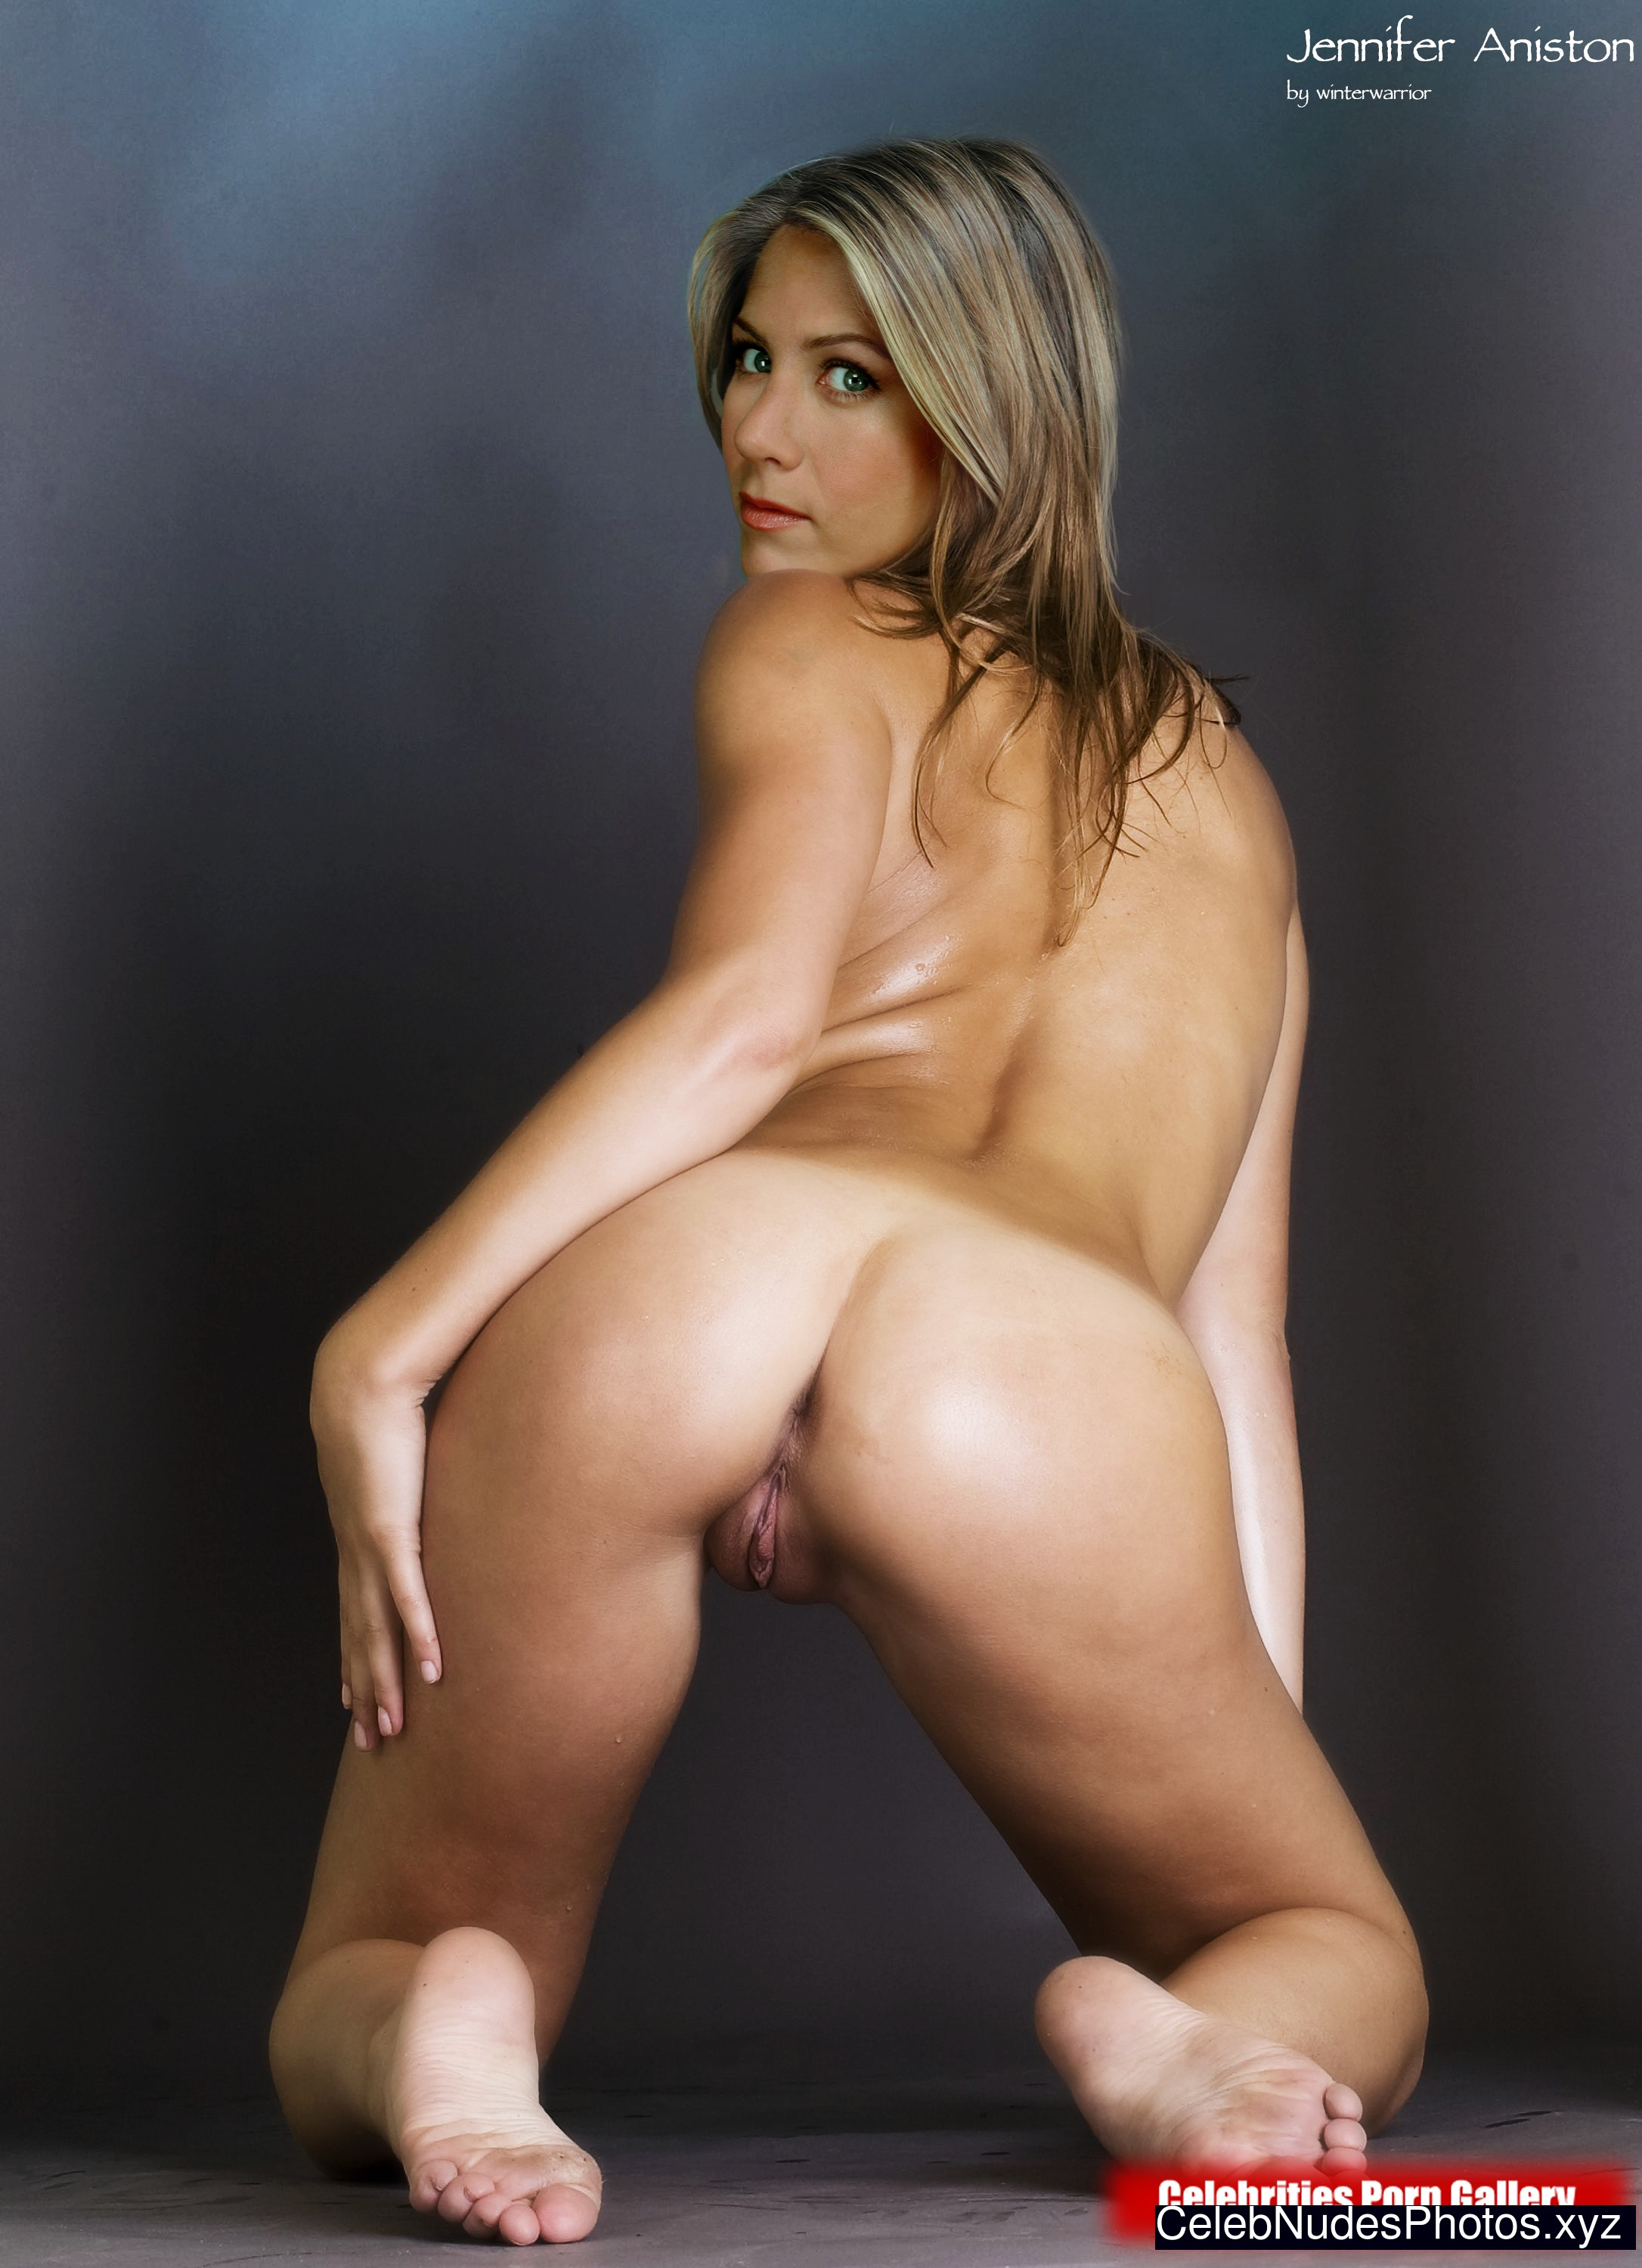 naked Aniston pic jennifer free